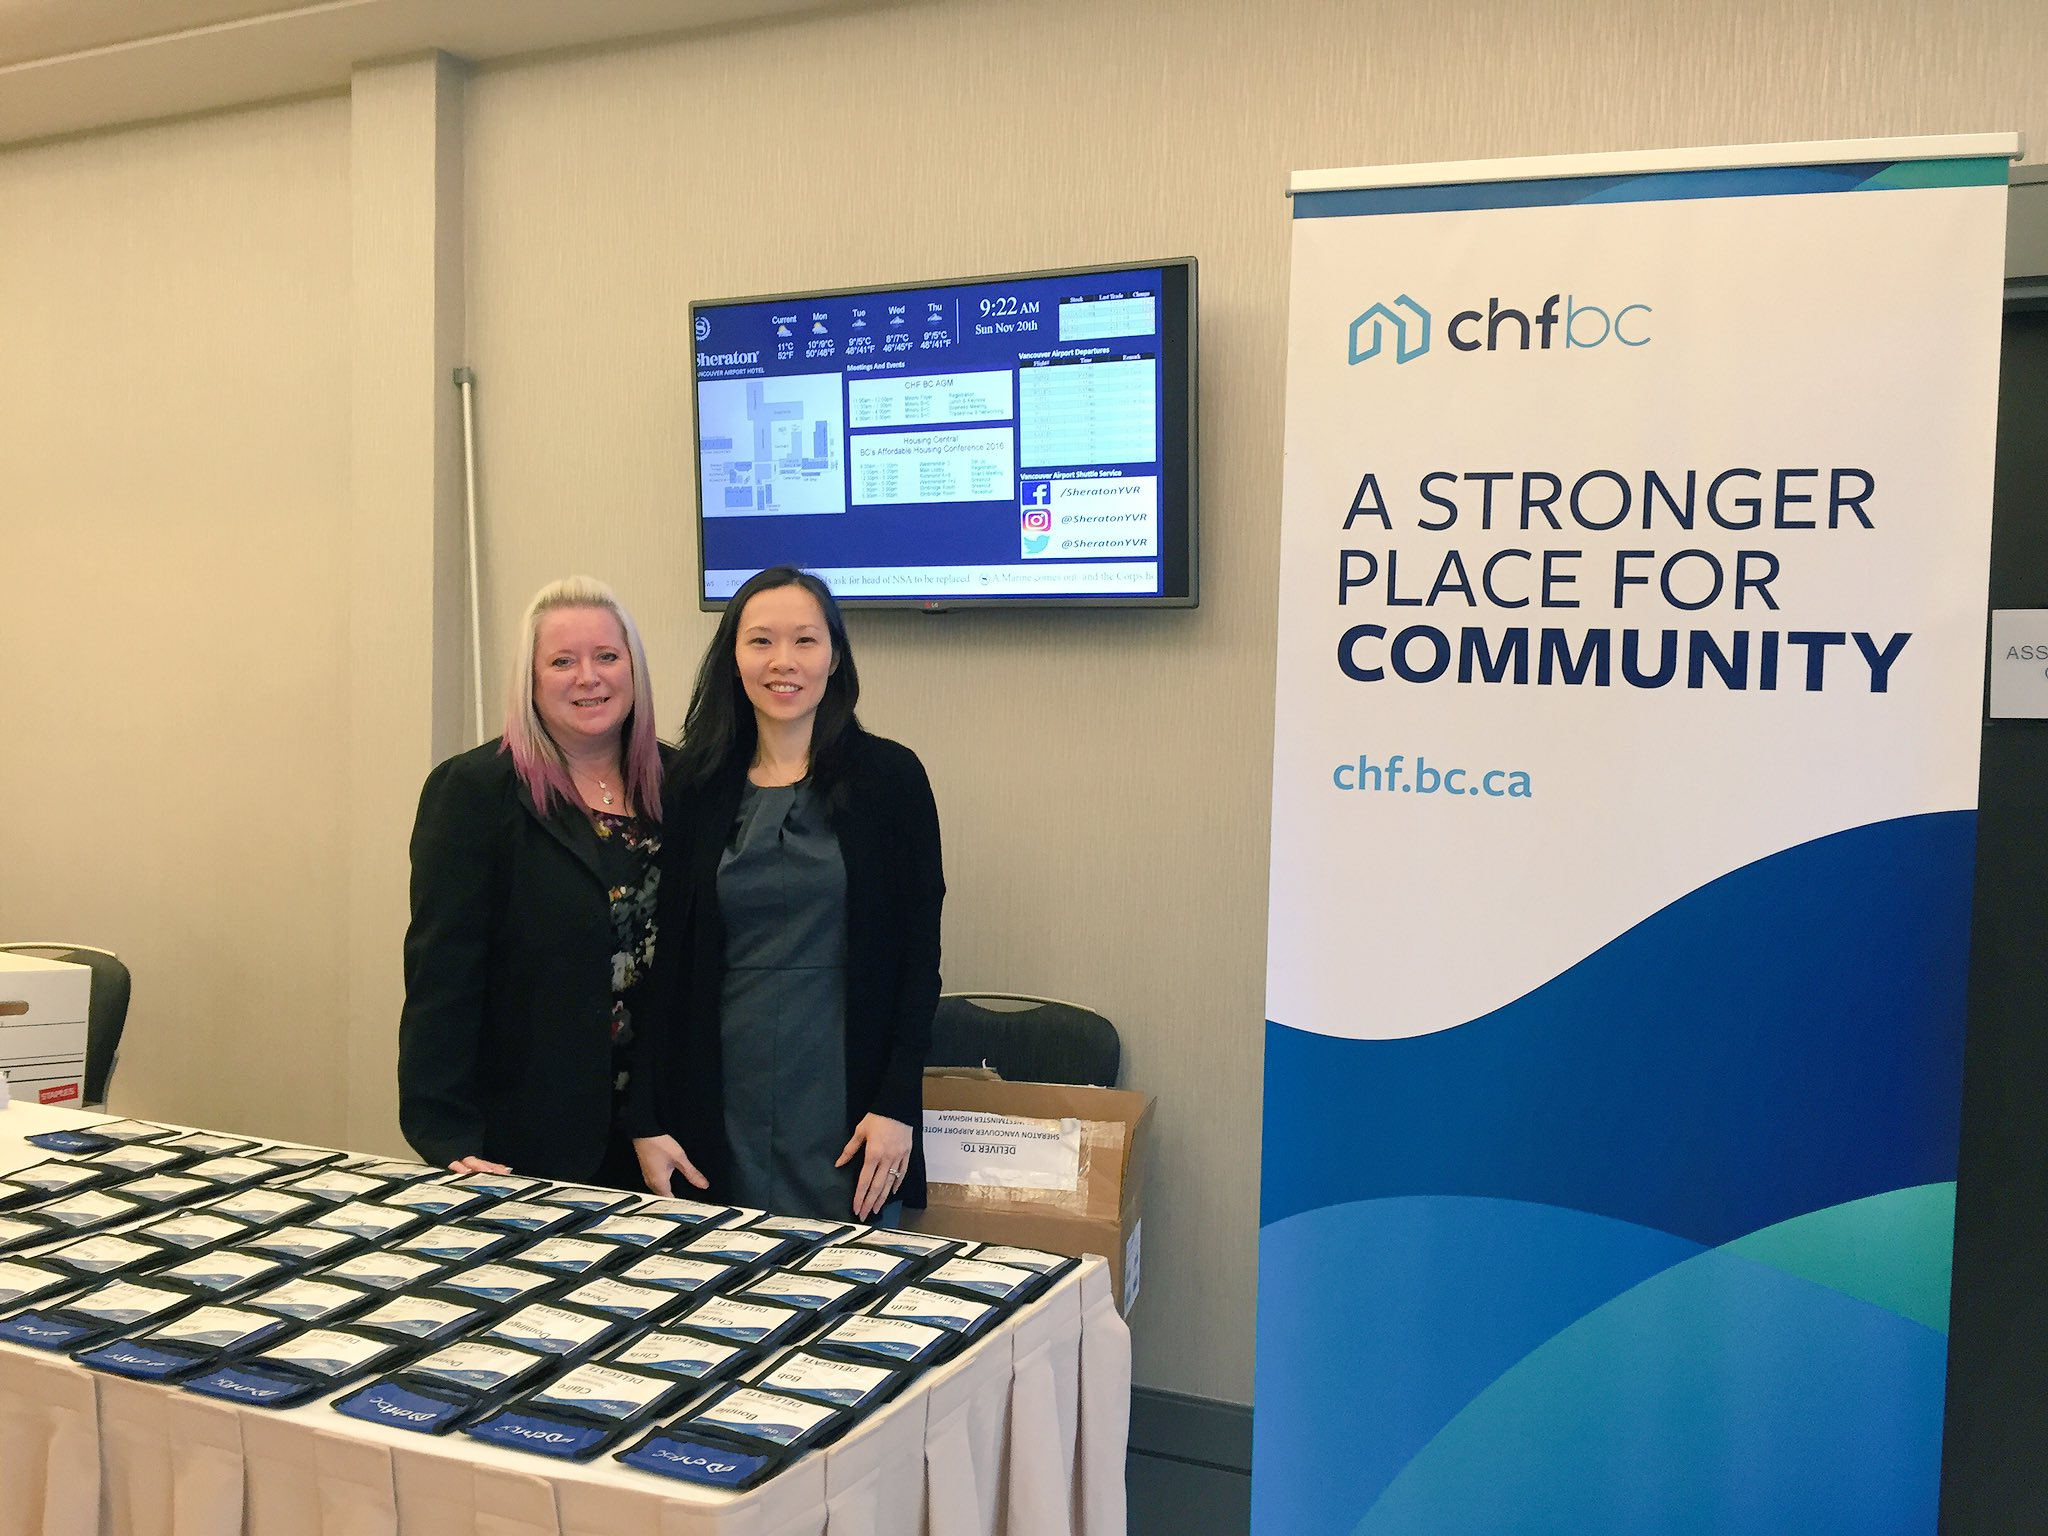 All checked in! Our team is looking forward to meeting you at the AGM today in @SheratonYVR👋🏻#HousingCentral https://t.co/SMHb18UelQ